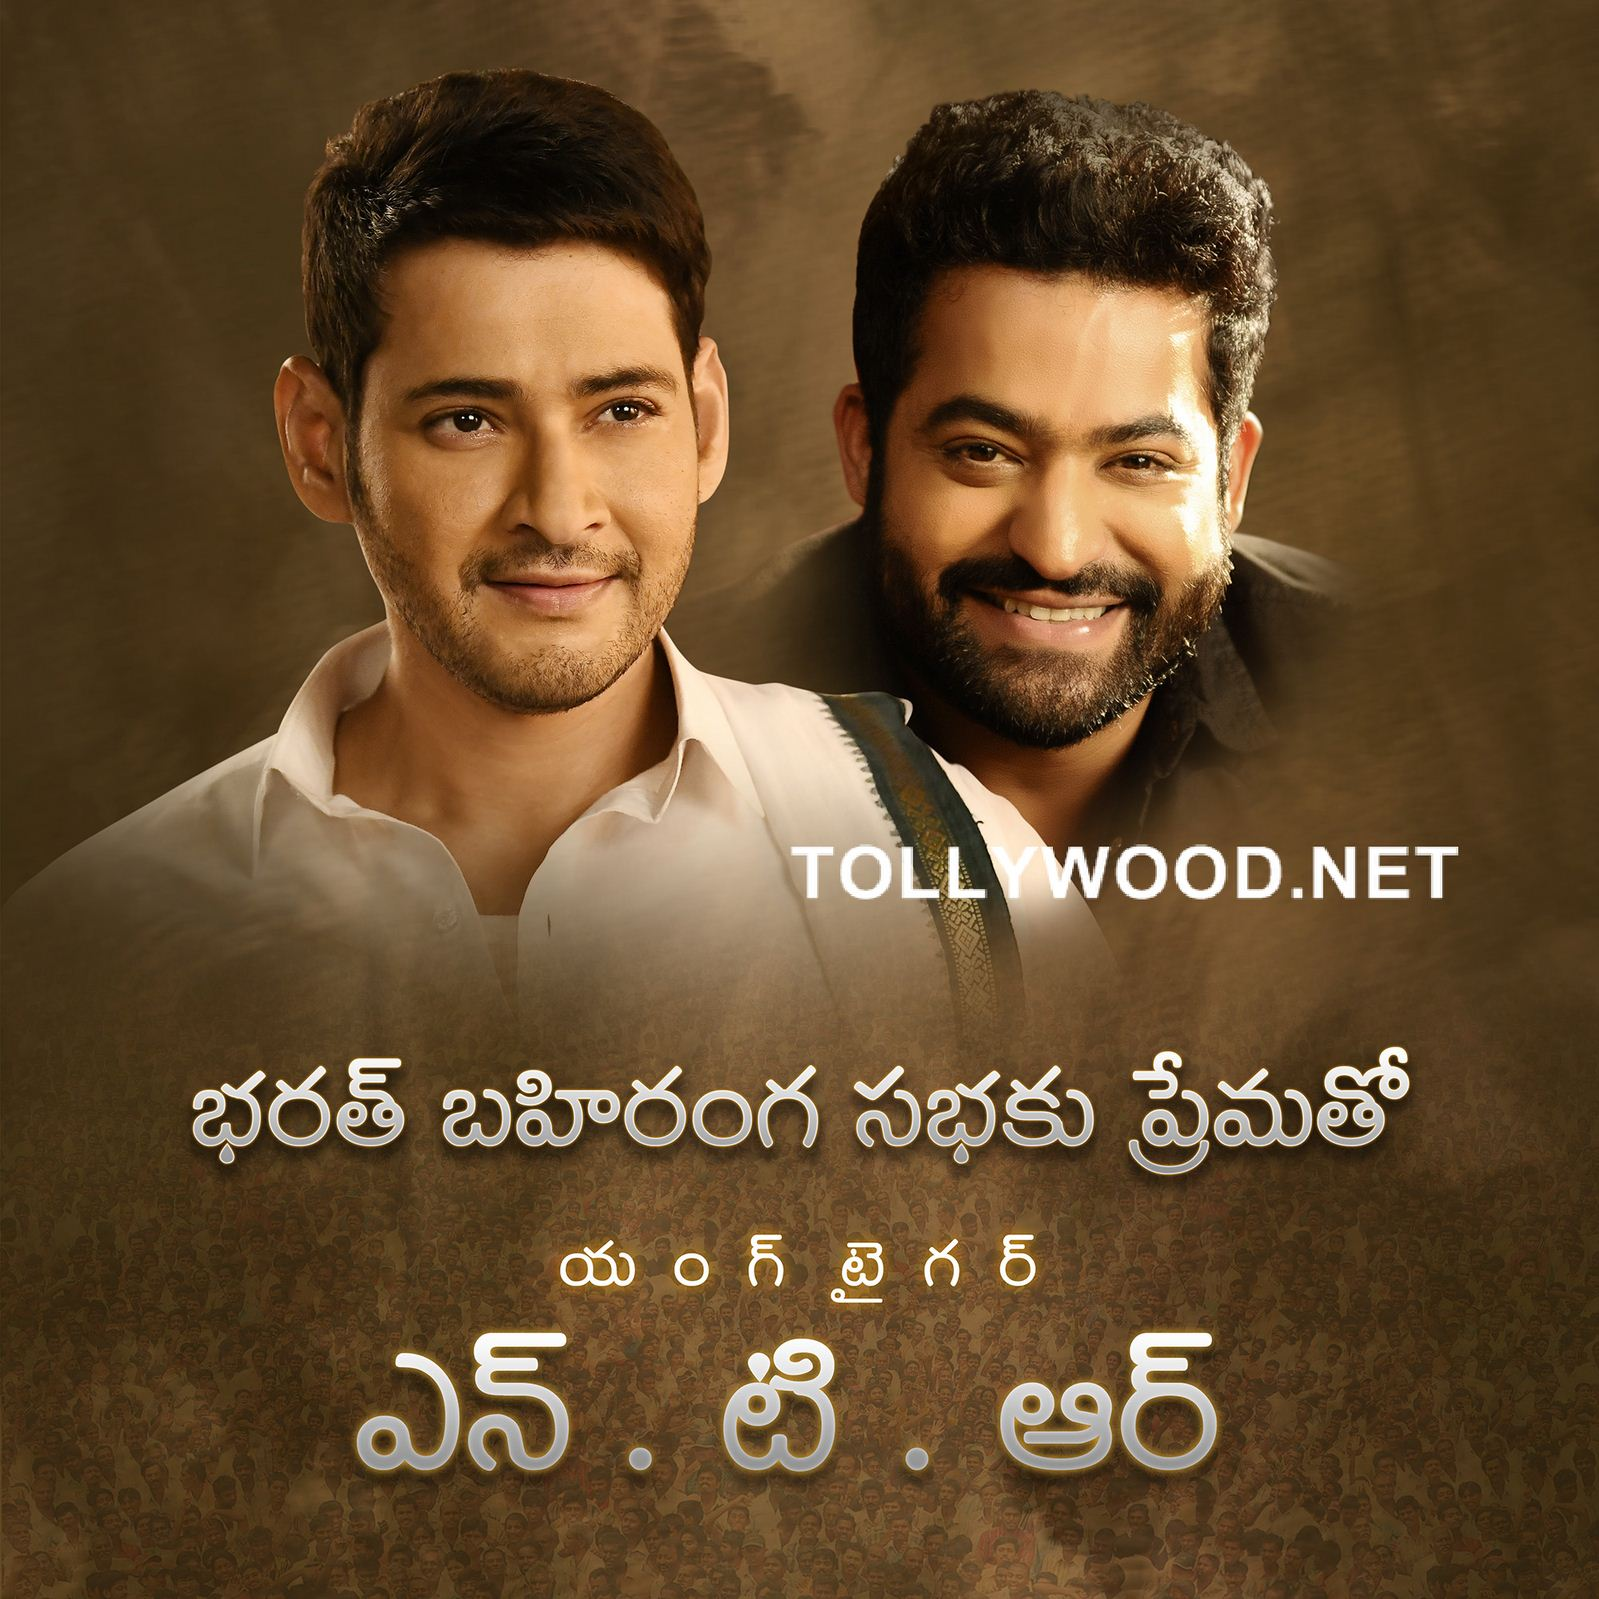 Stage set for grand Pre-release event of Mahesh Babu's Bharat Ane Nenu